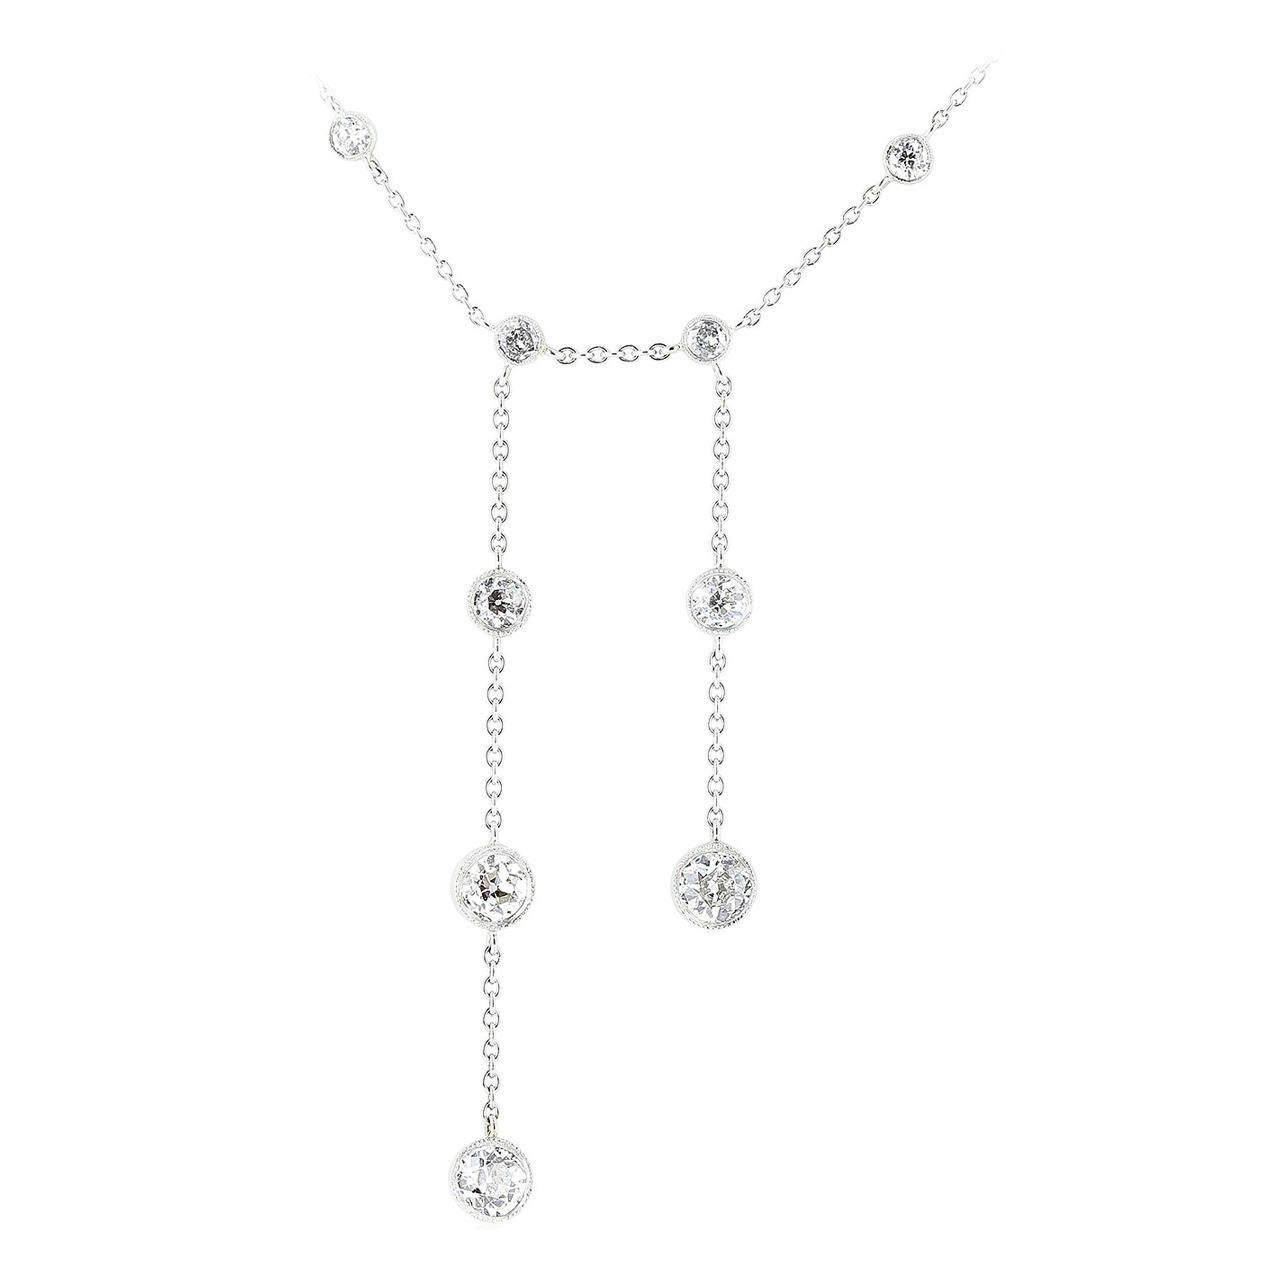 4.15 Carat Mine Cut Diamond Platinum Necklace 1